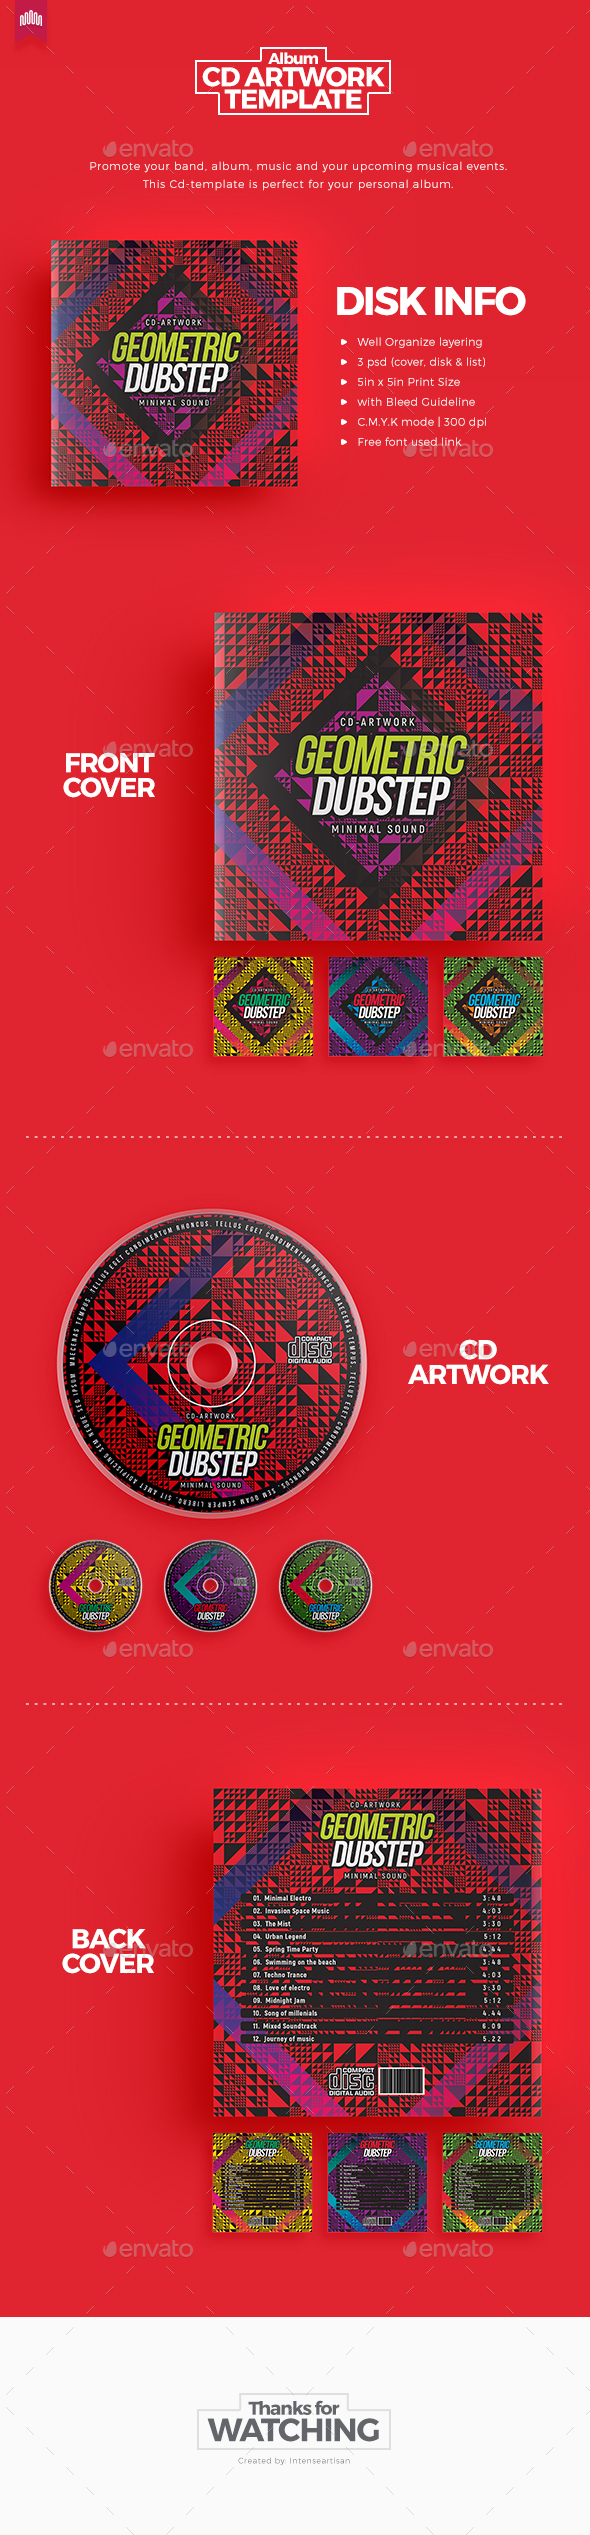 Geometric Dubstep - CD Artwork - CD & DVD Artwork Print Templates